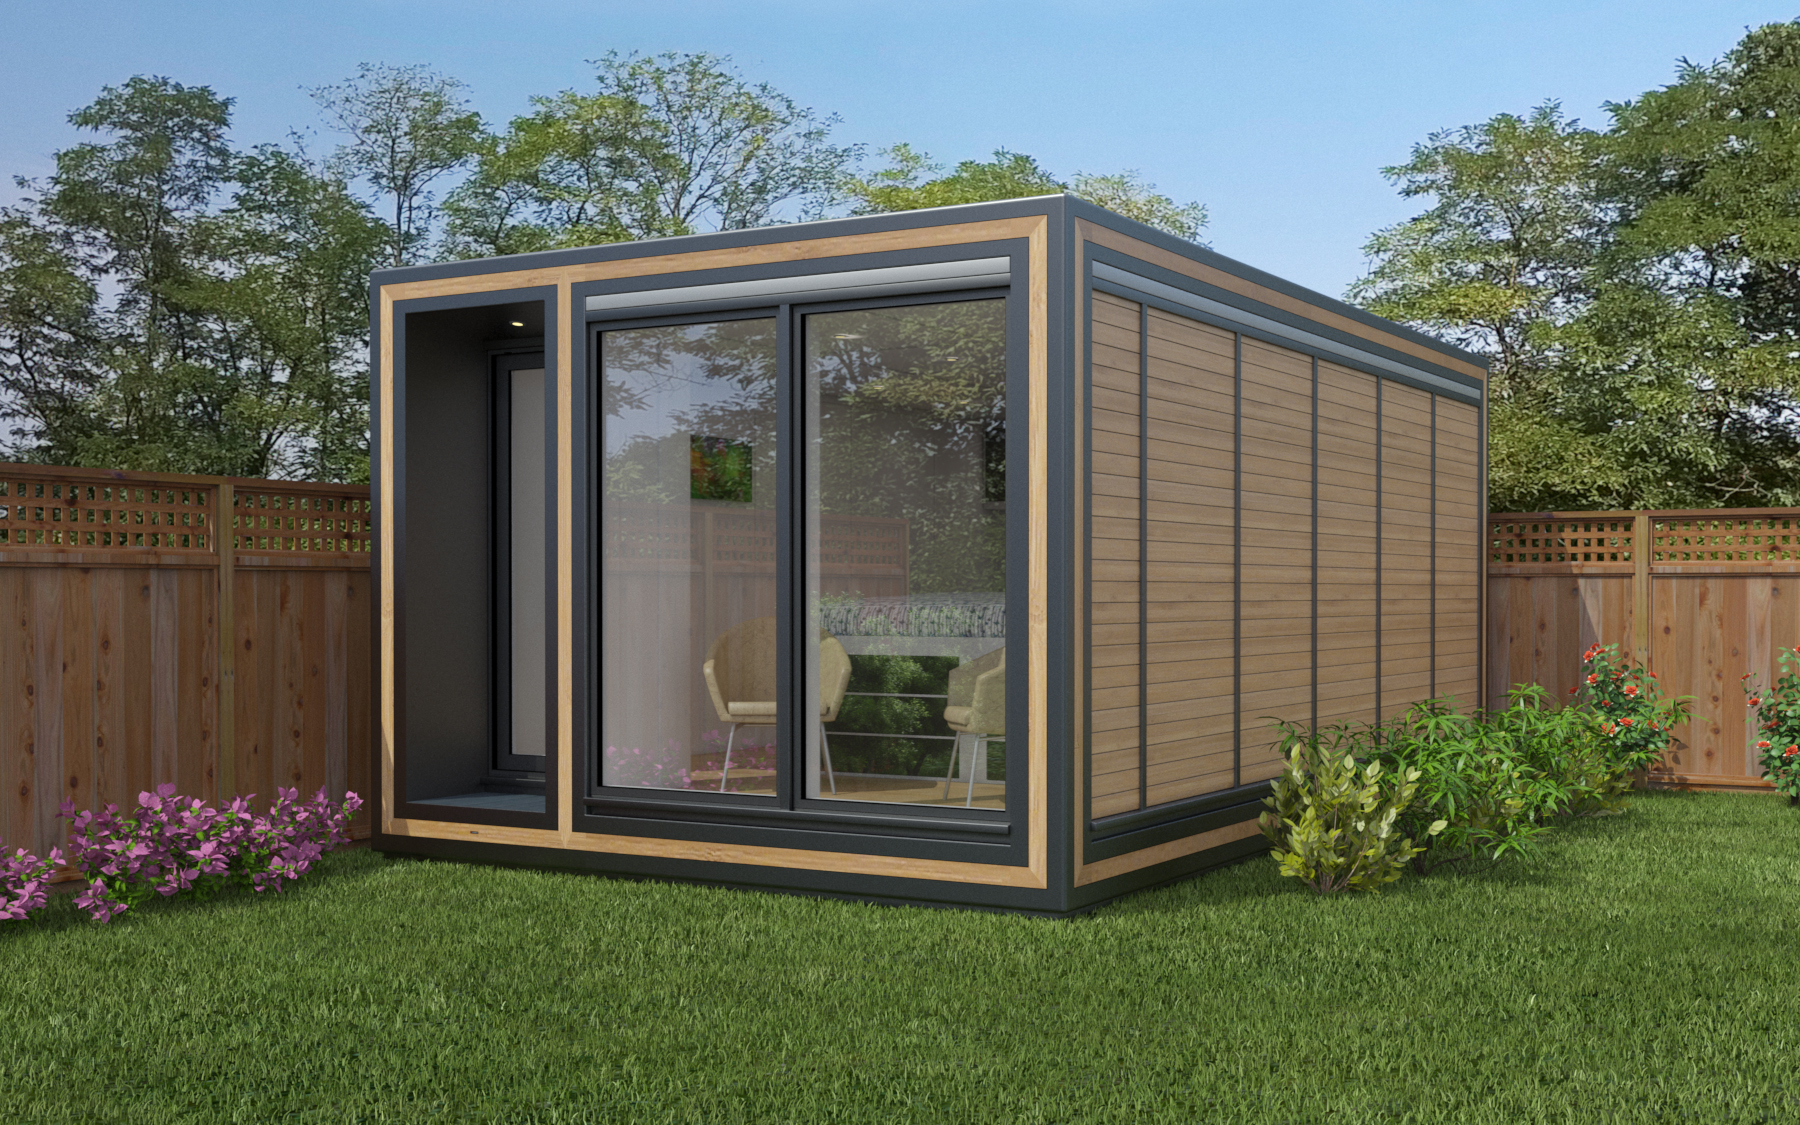 ZEDBOX 355  (3 x 5.5)  Internal Size: 3188 x 5888  External Size: 3658 x 6358  Bed Options: Single or Double  Kitchen Options: Micro Kitchen or Kitchen  Wet Room Options: Yes  Portico: Yes  Price:  £32,000    Optional Extras    Request Zedbox Catalogue